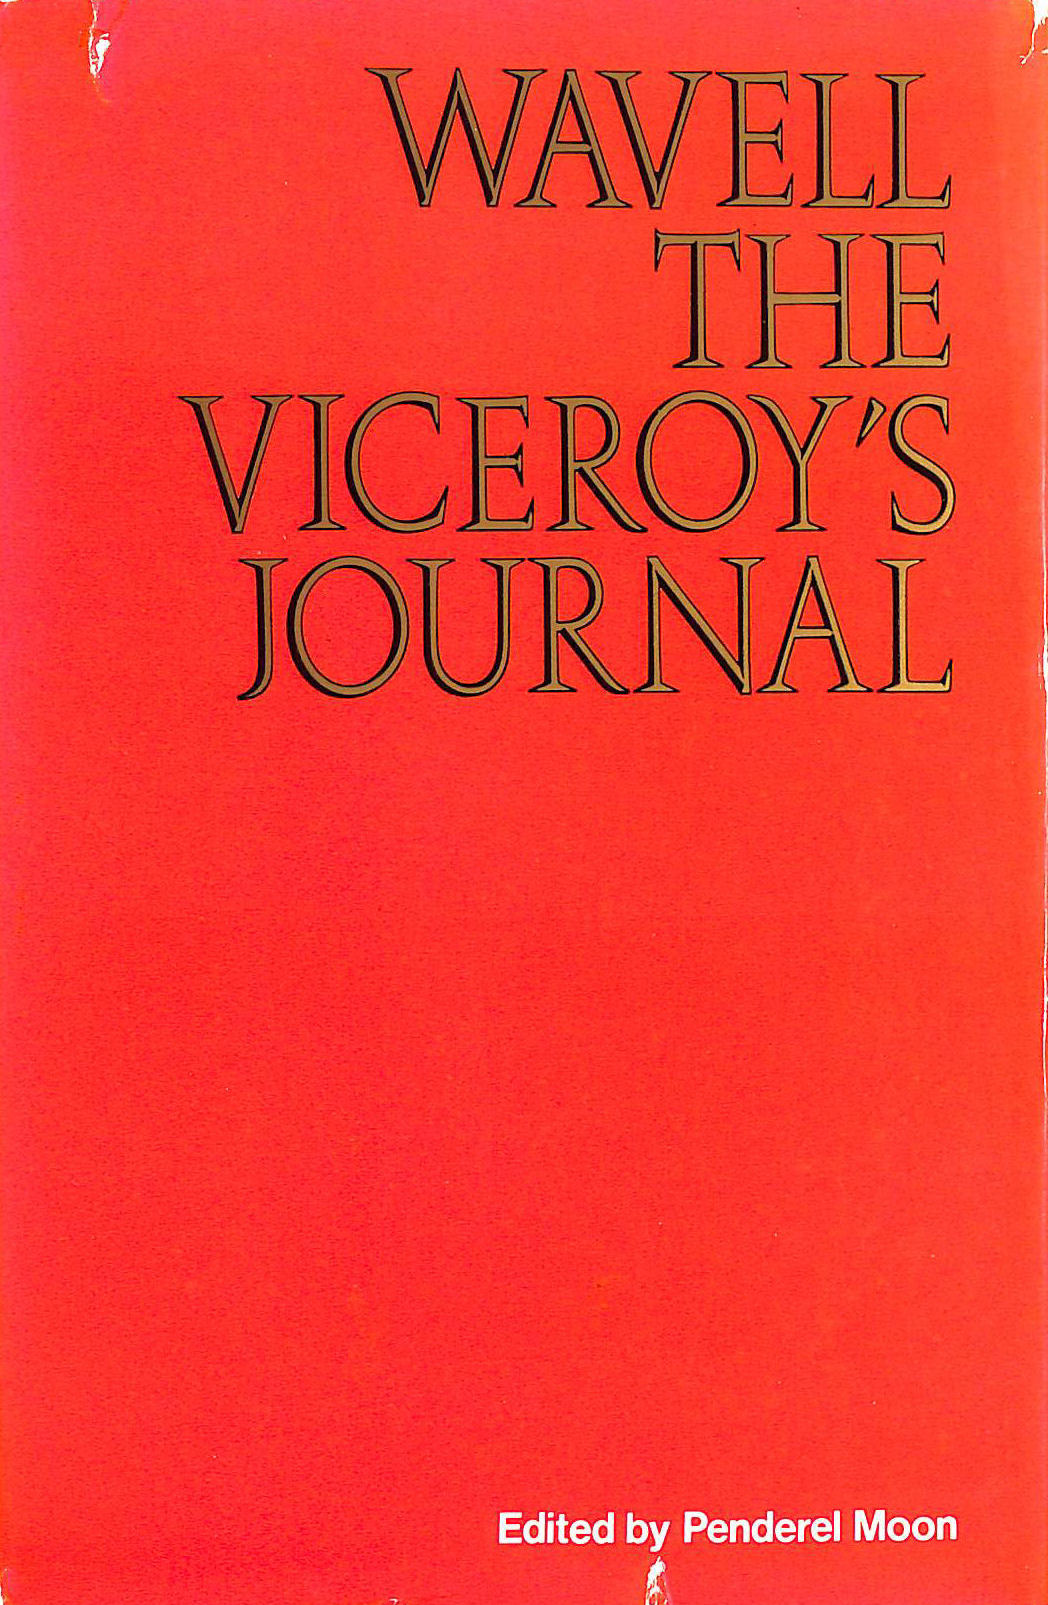 Image for Wavell: The Viceroy's Journal